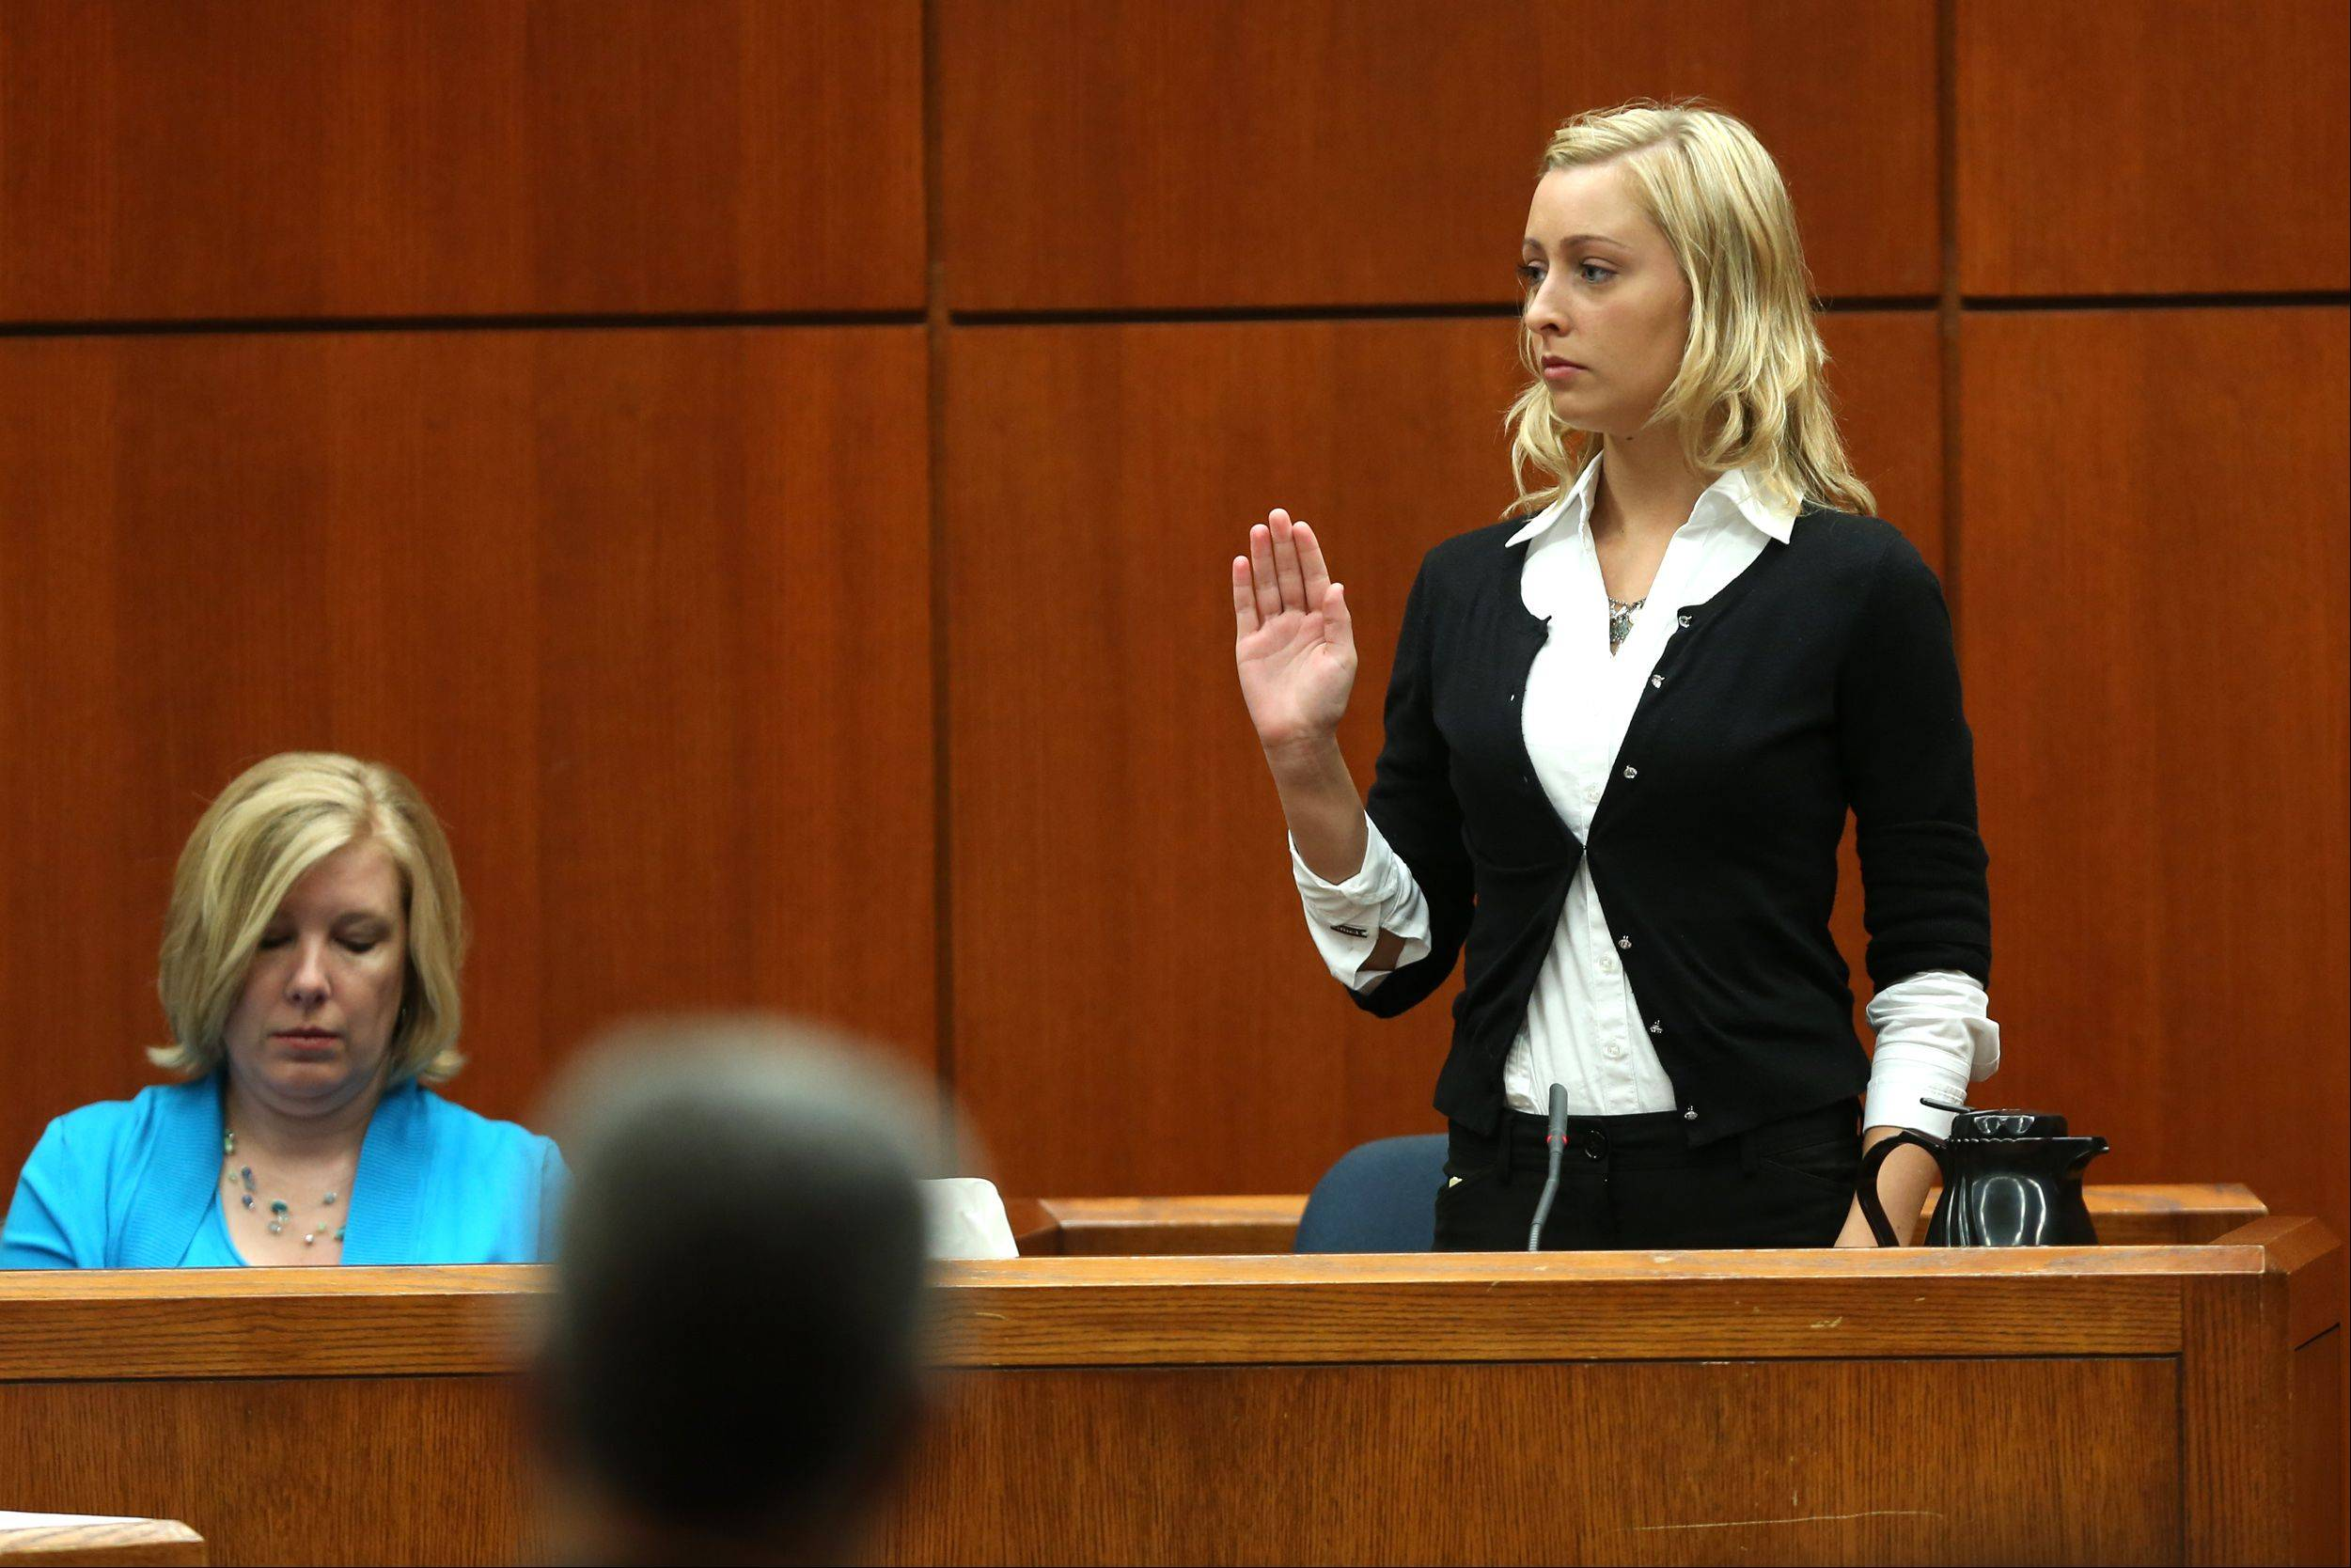 Linnea Nodarse, right, sister of convicted gunman Jacob Nodarse, is sworn in Thursday at the Johnny Borizov trial in Wheaton.